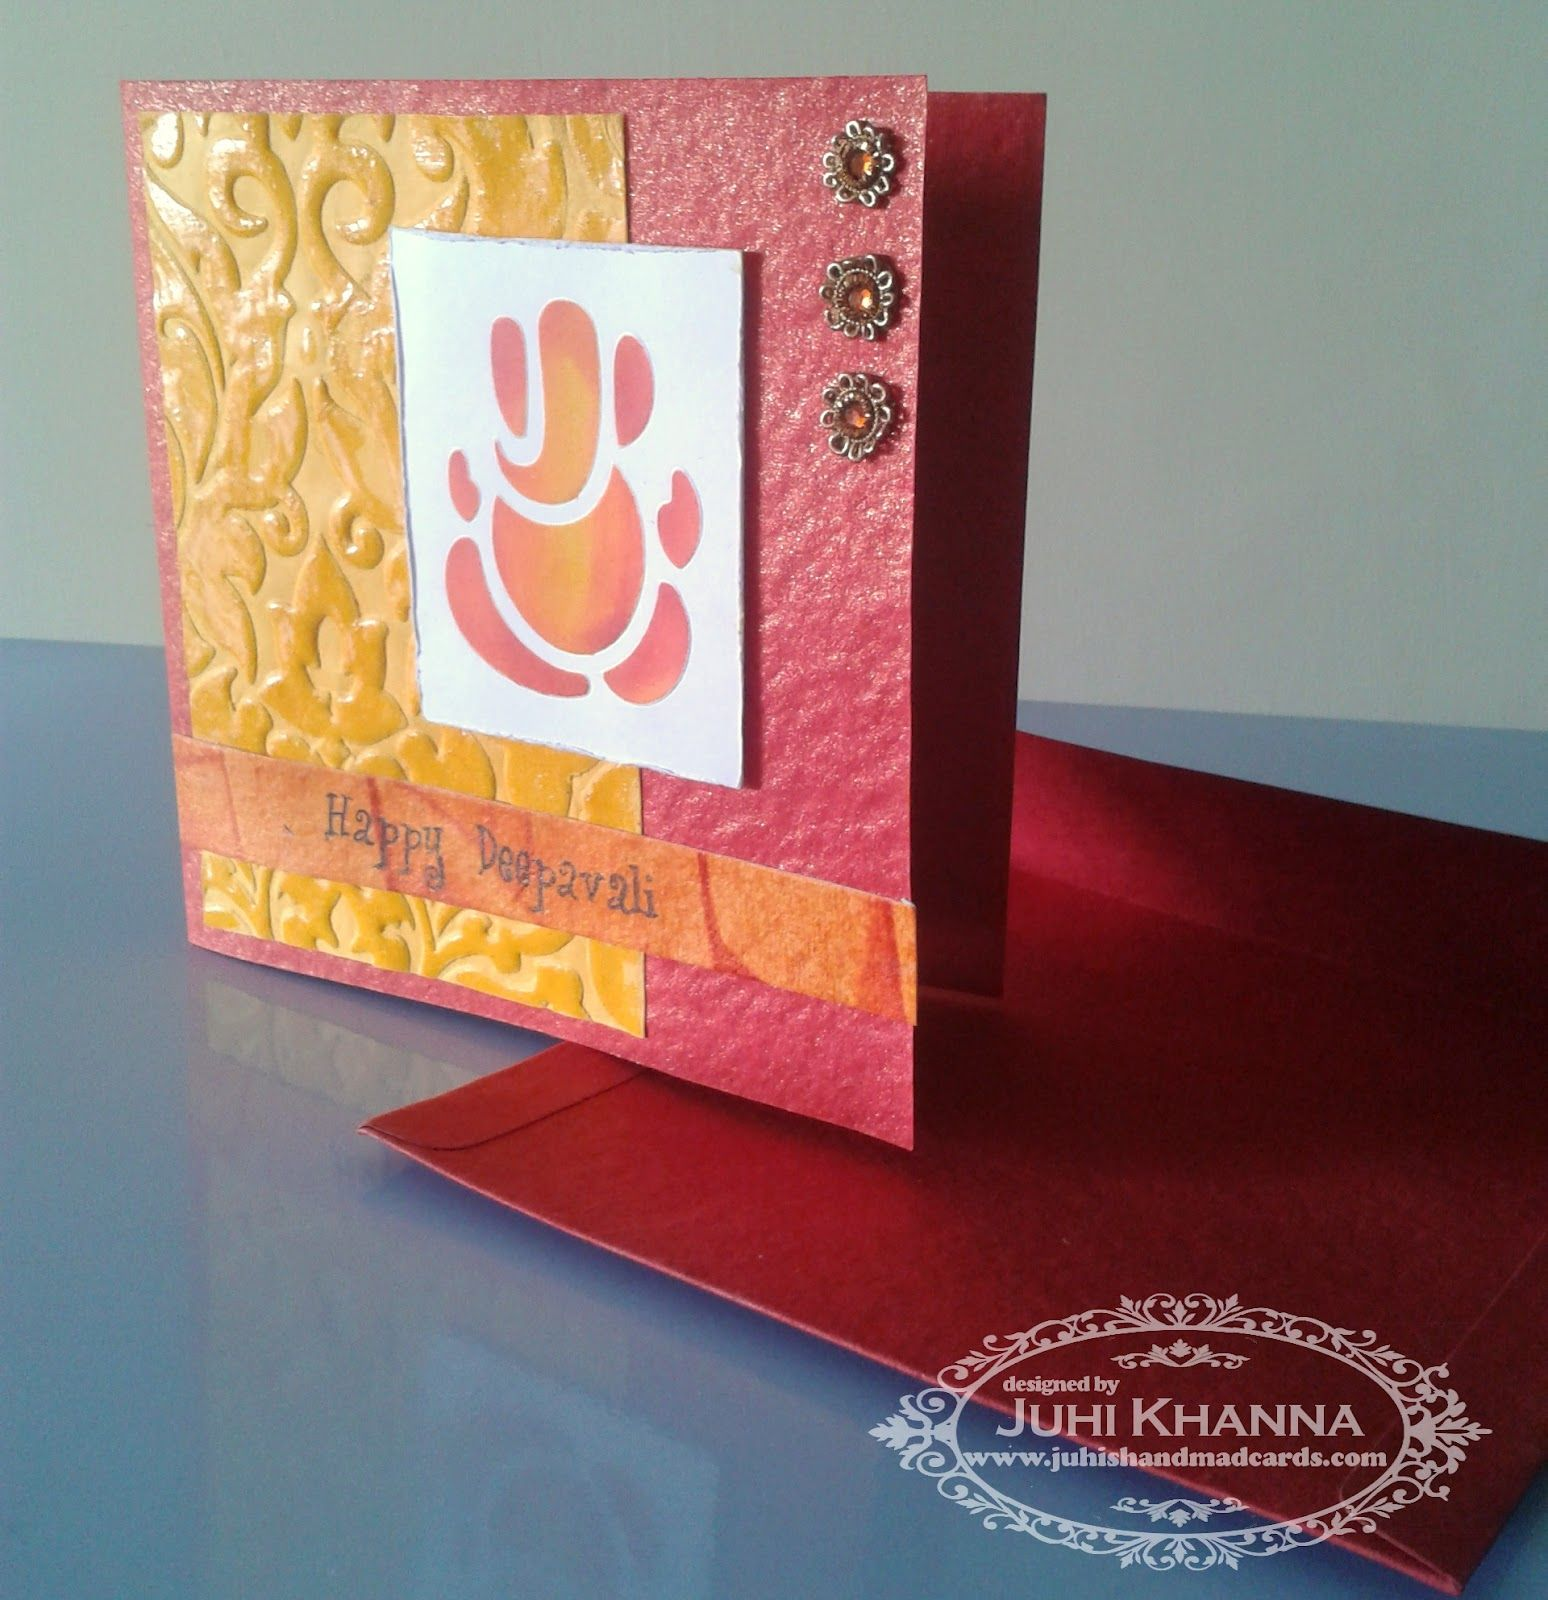 Juhis handmade cards handmade cards for diwali gunjan diwali celebrations can be given a personal touch through personalized diwali homemade greeting cards signifying the victory of good over the evil within kristyandbryce Image collections